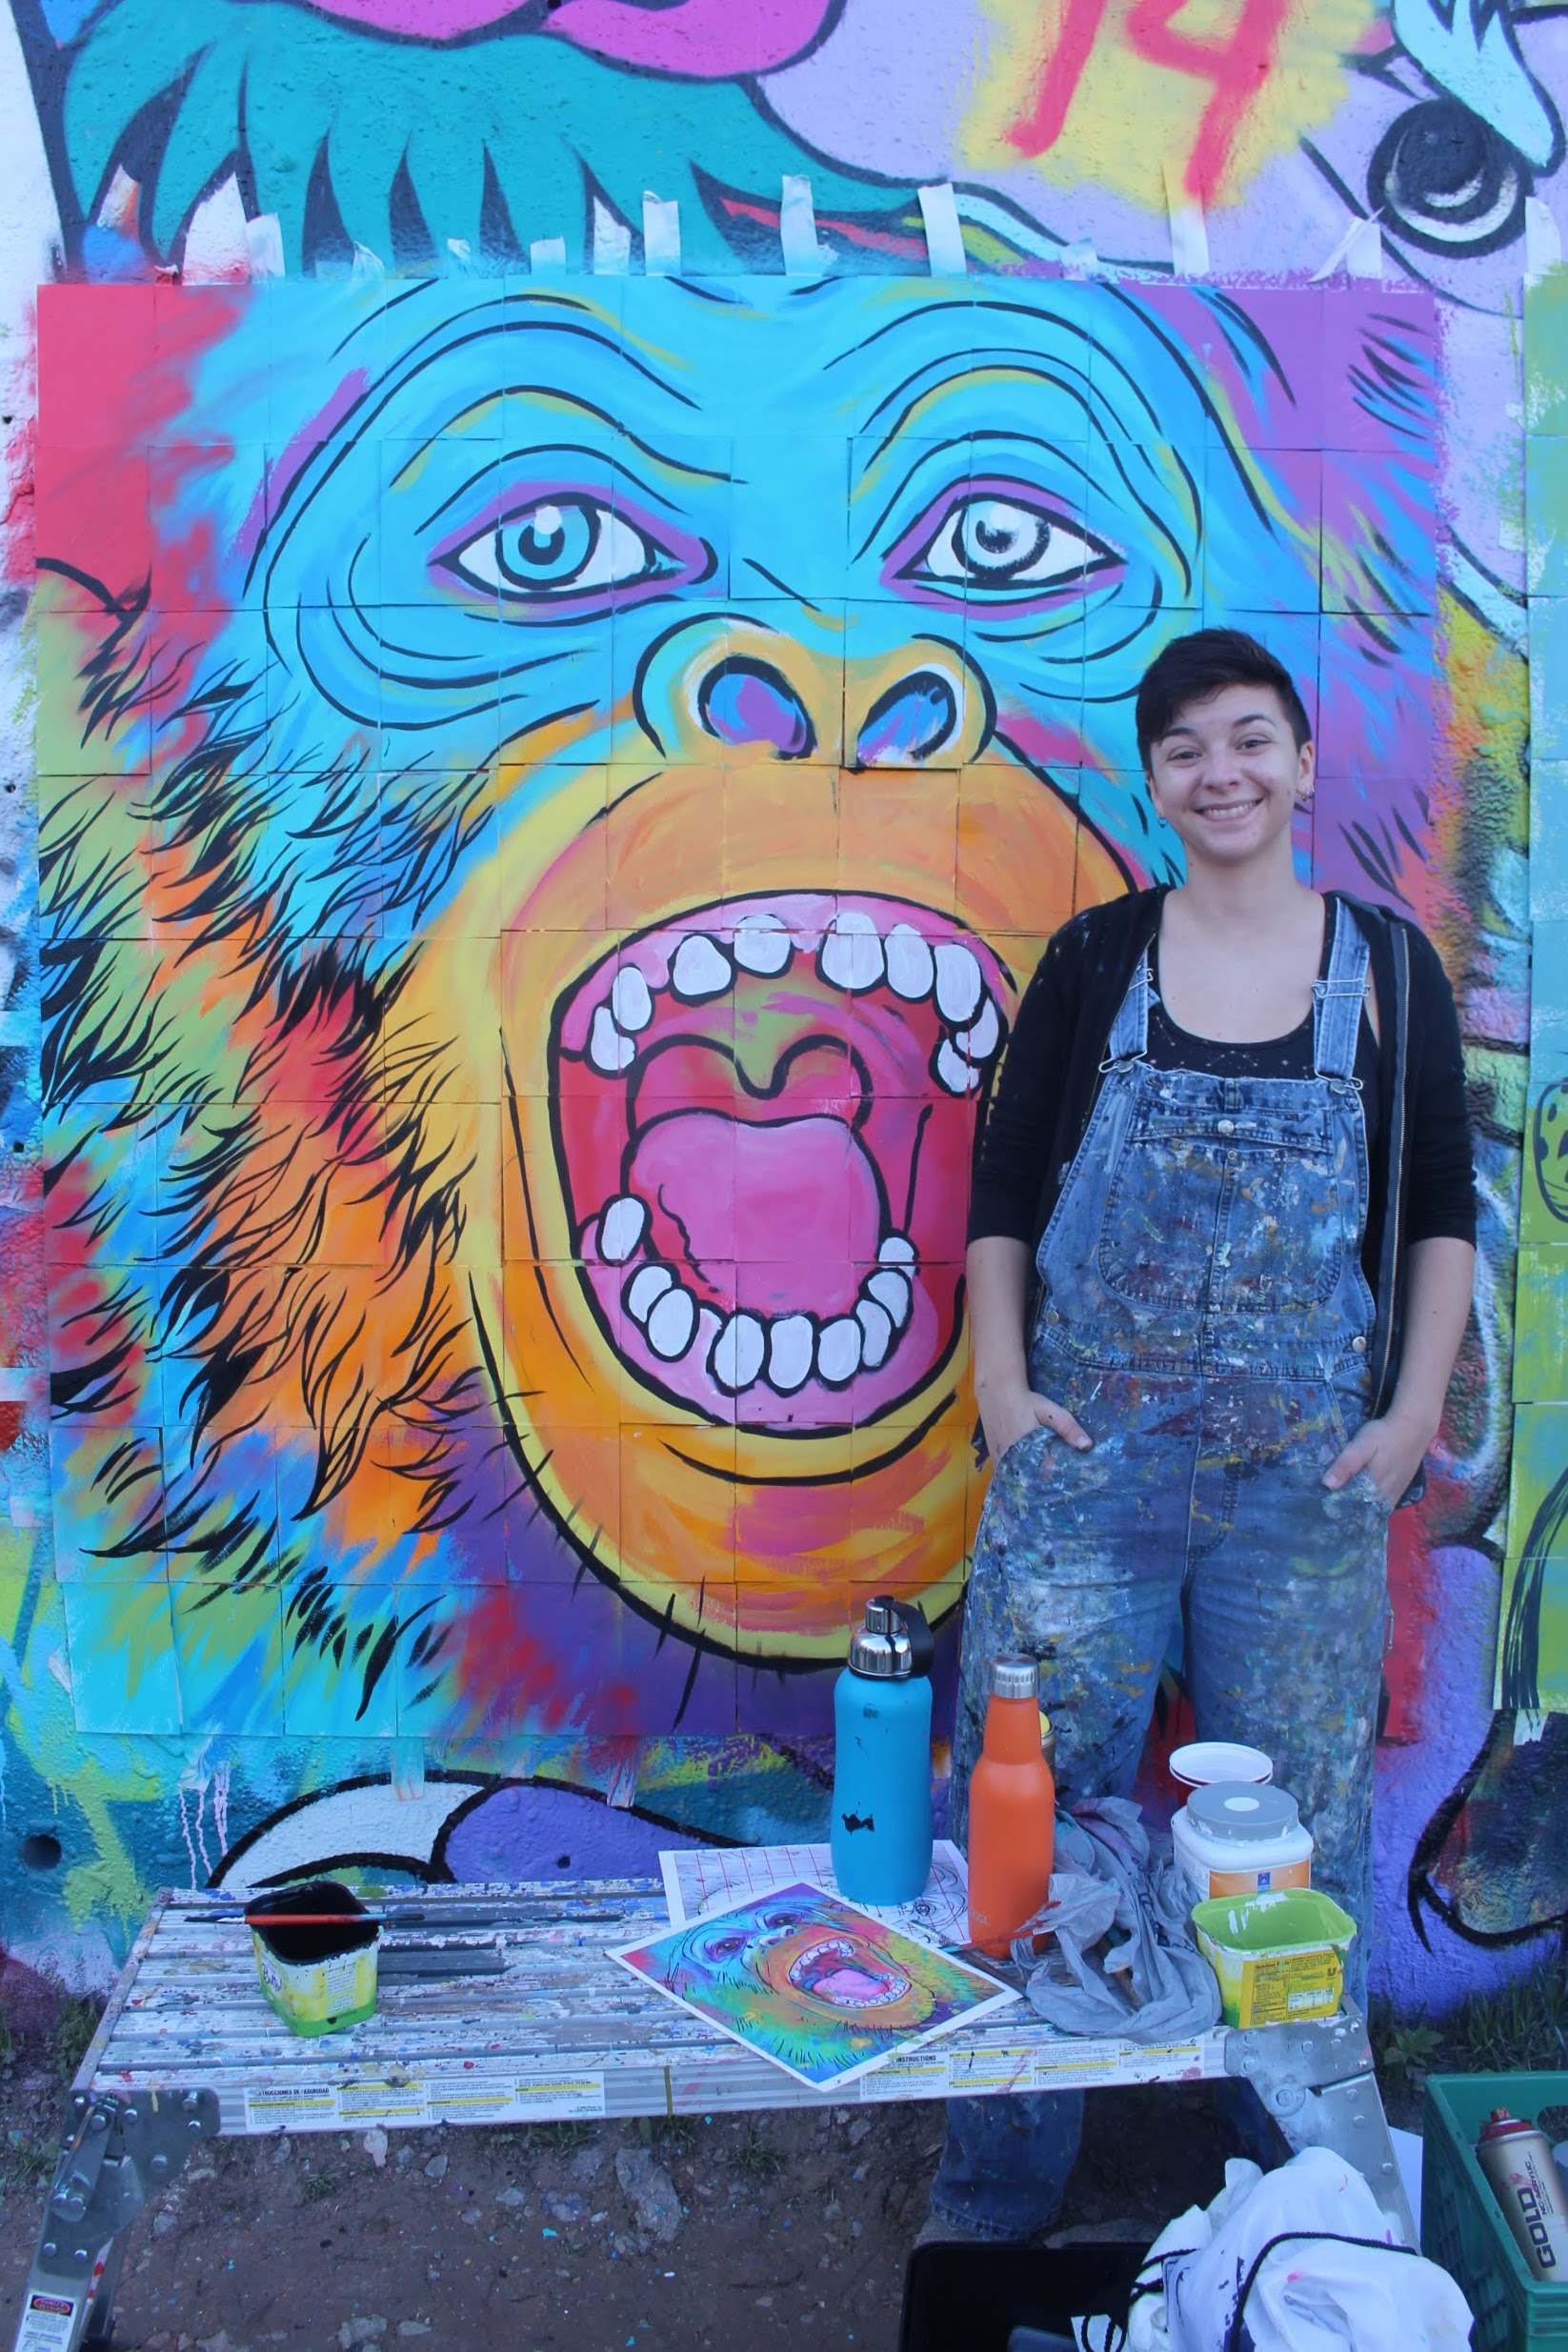 Aerica Raven Van Dorn poses with her nearly complete mural.